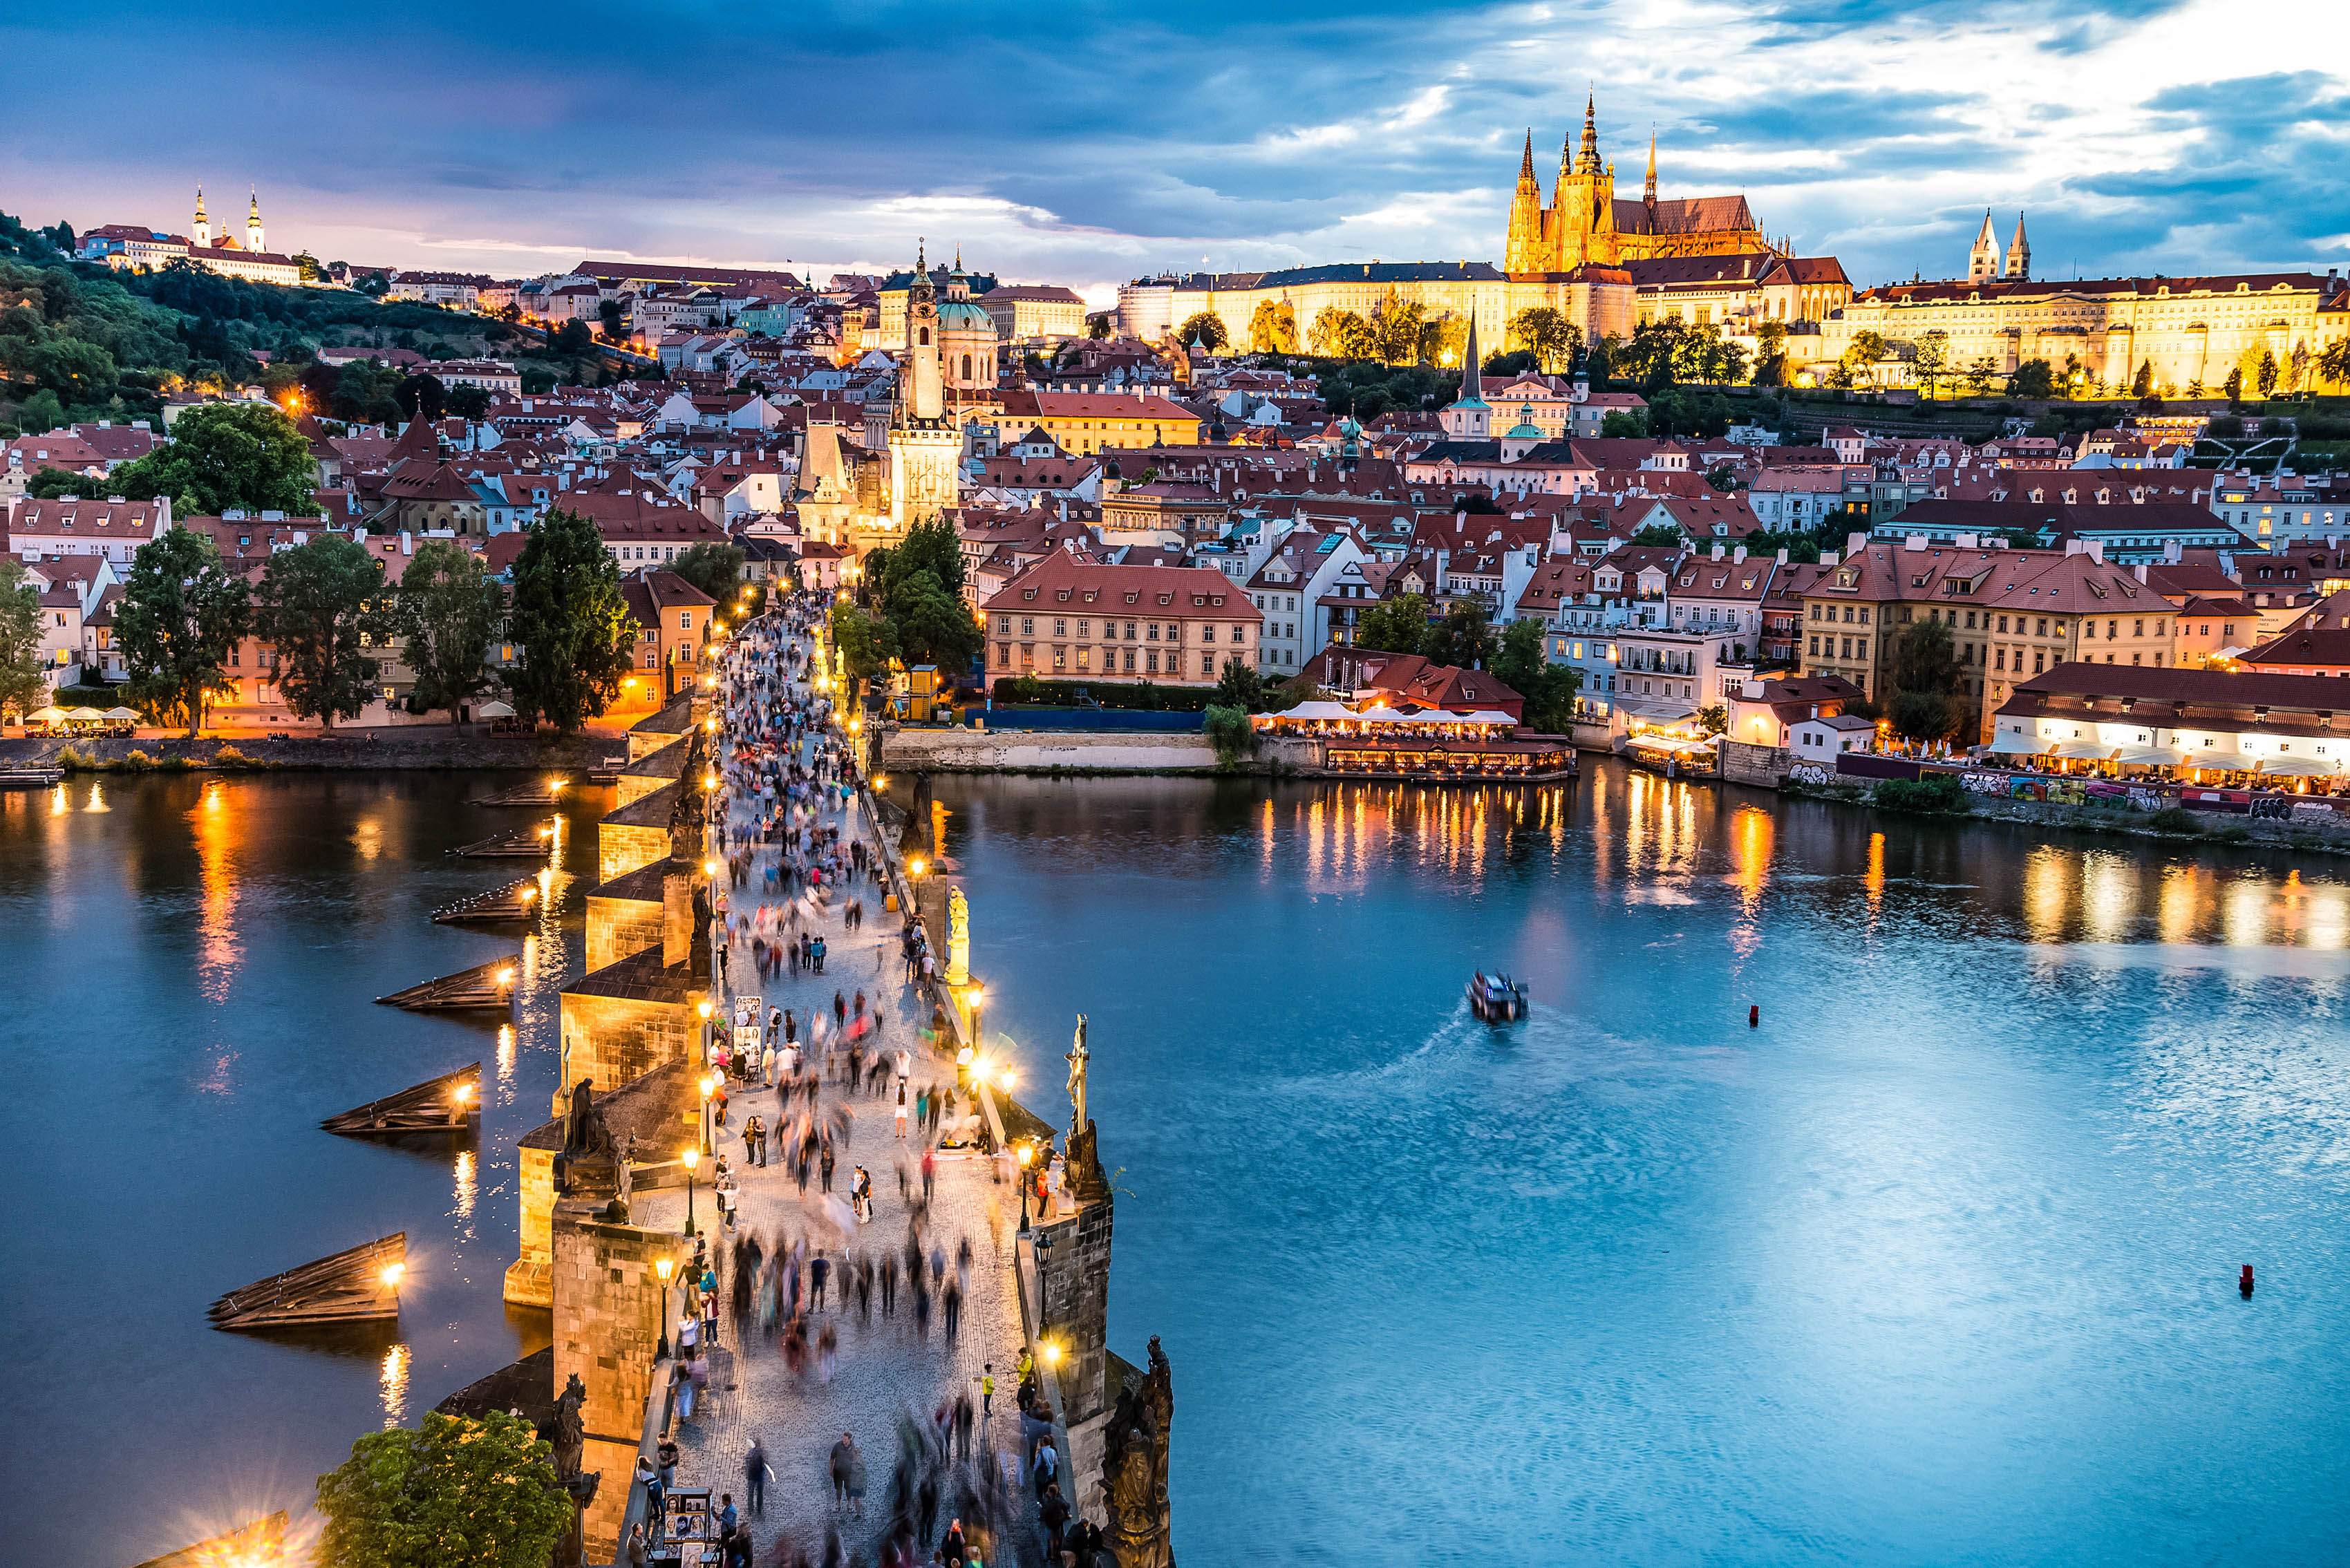 prag-night-shutterstock_300856853-2